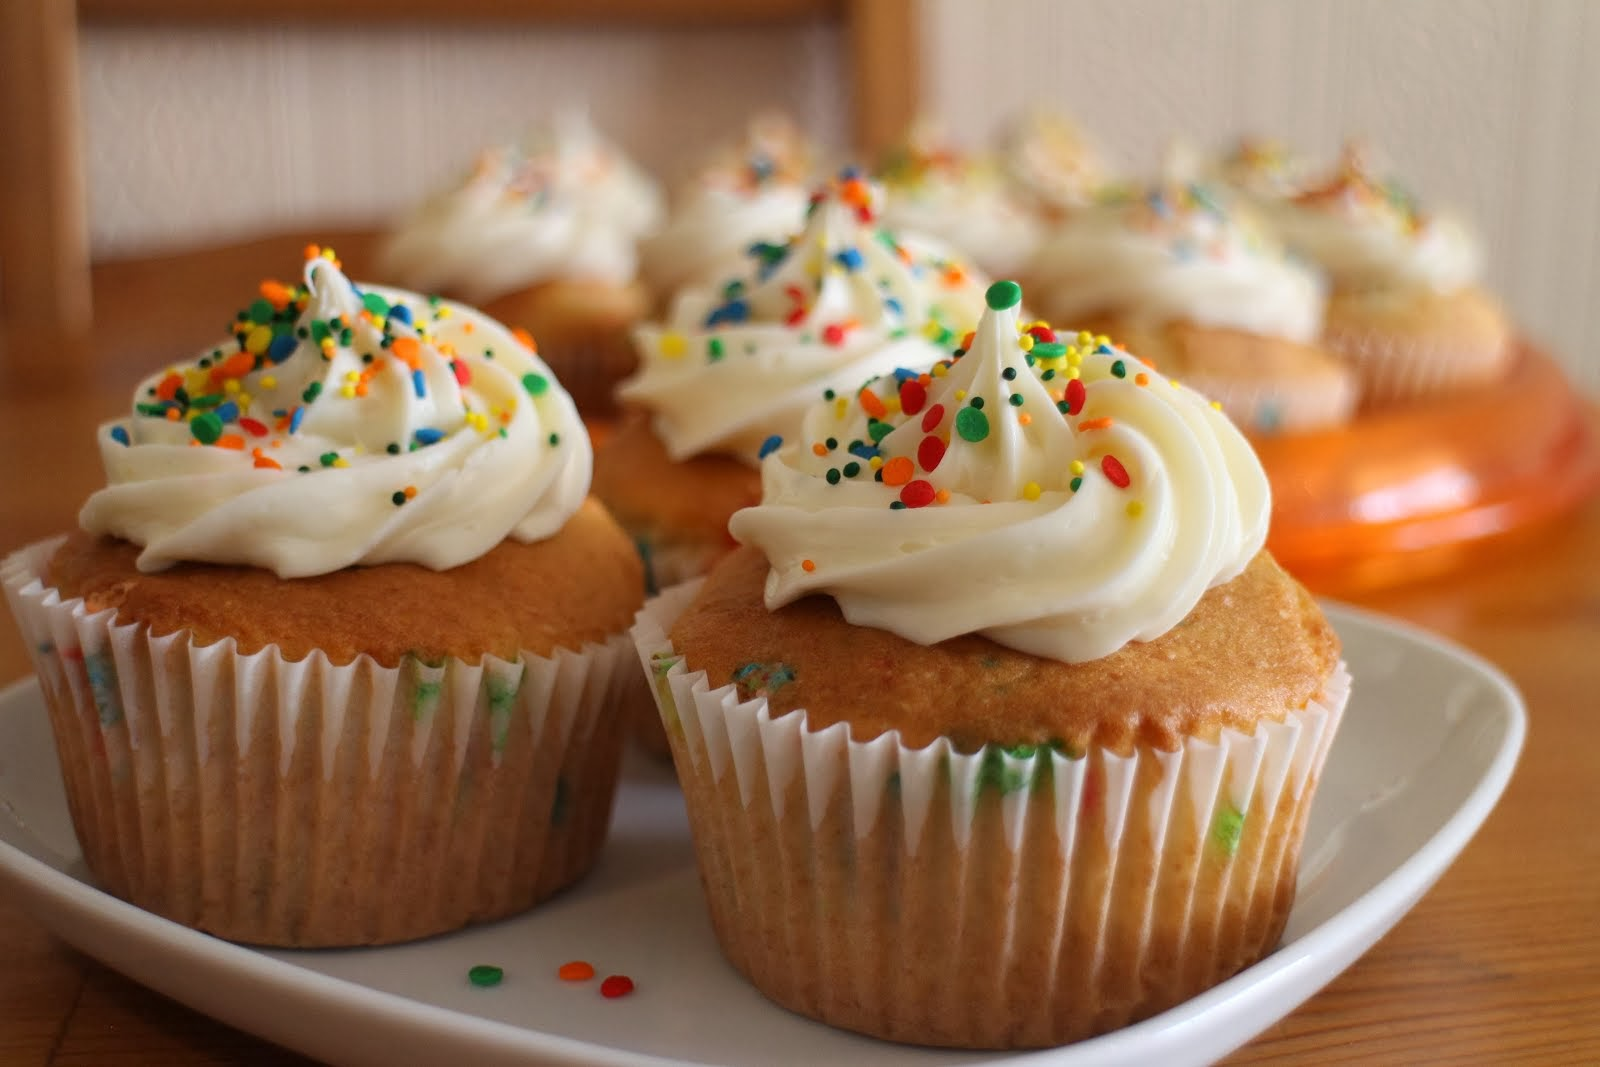 Love me some funfetti cupcakes!